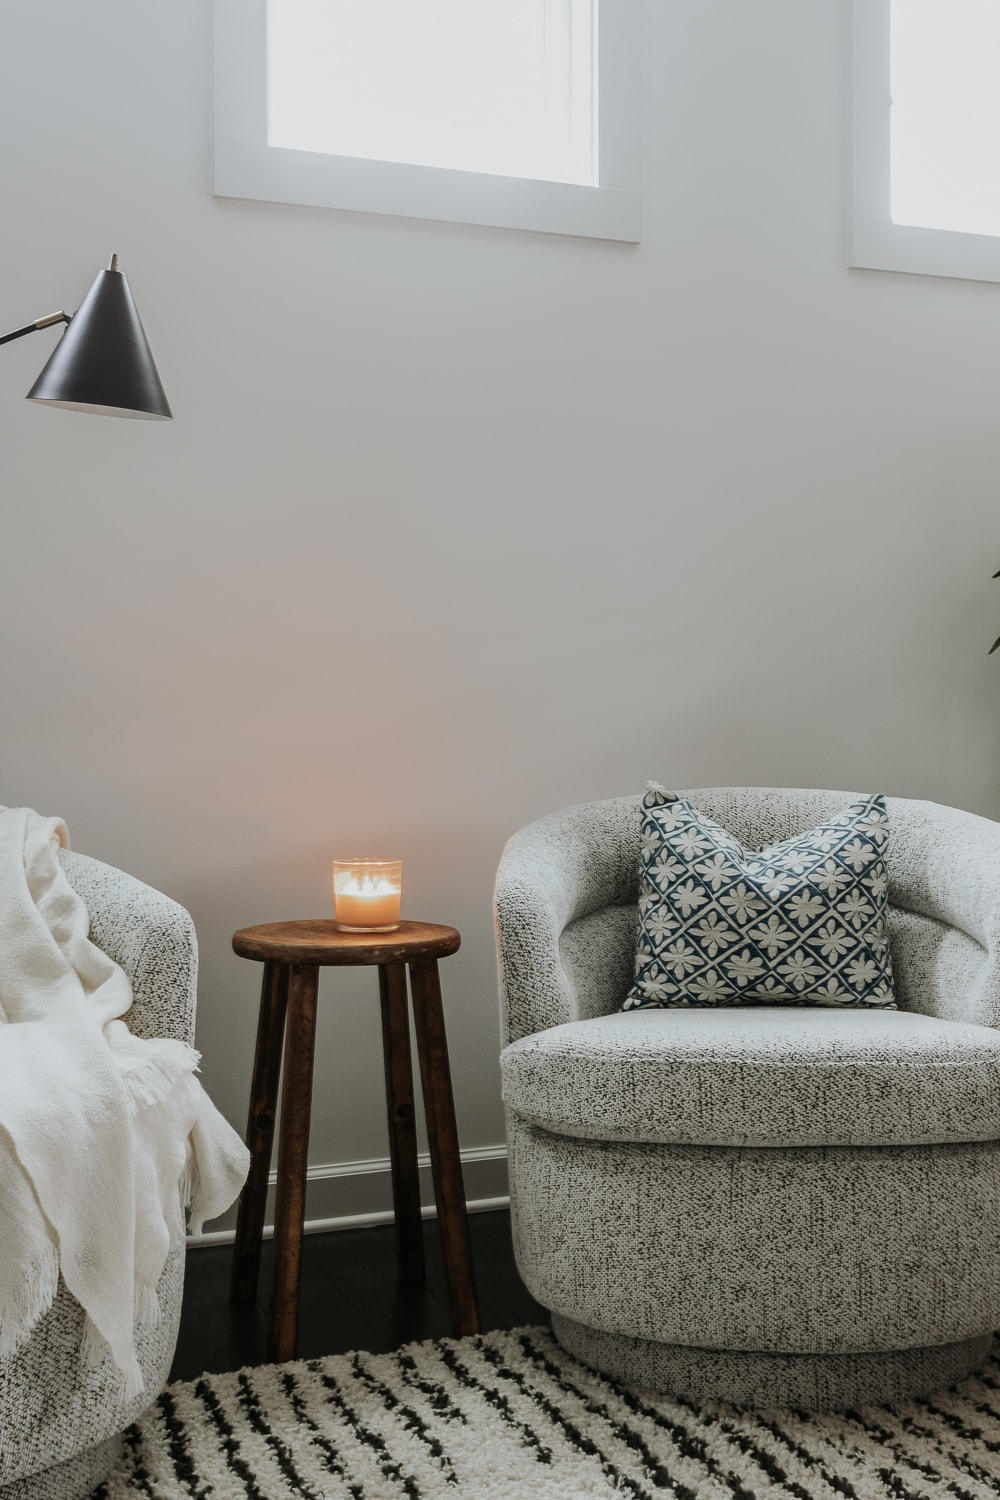 a small rustic side table between two chairs - diy side table tutorial in post!